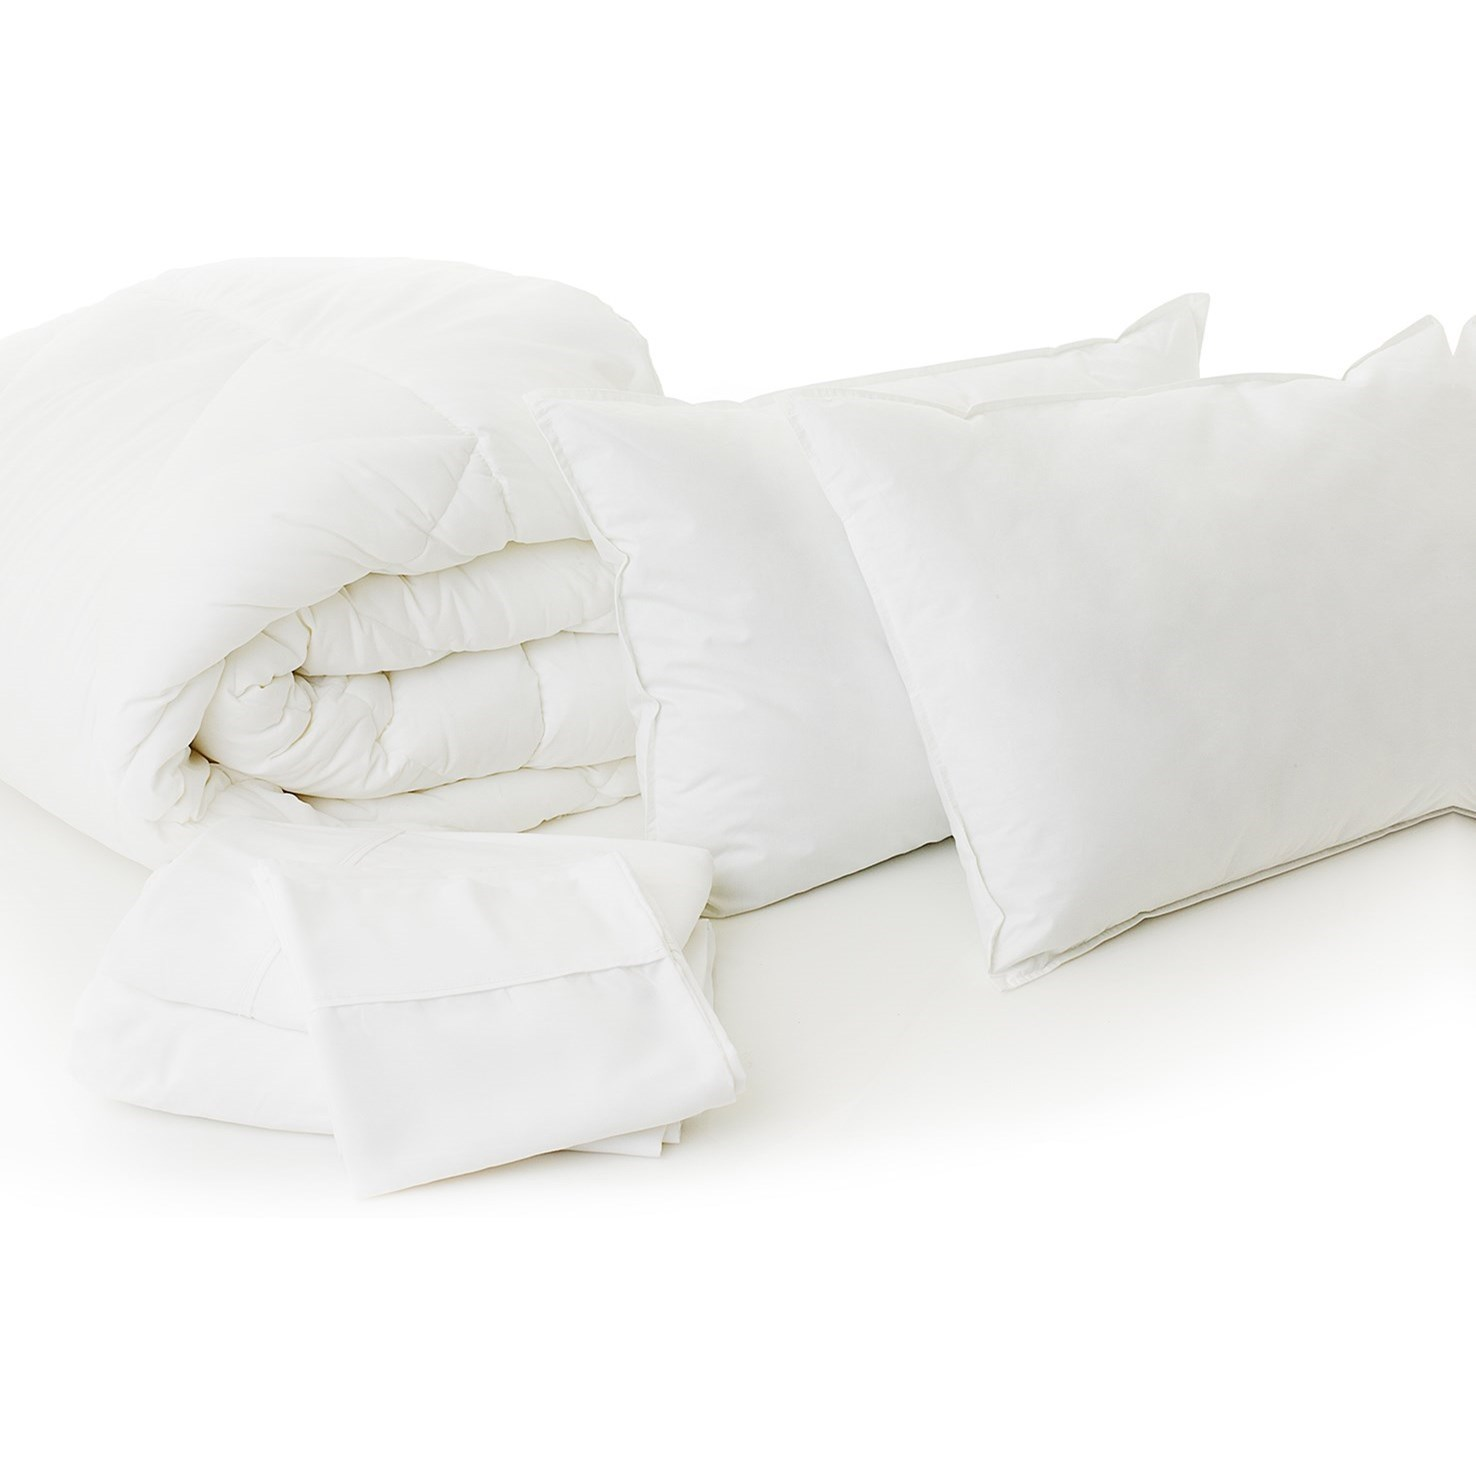 Malouf Bed in a Bag Full Bed in a Bag  - Item Number: MA01FFBB